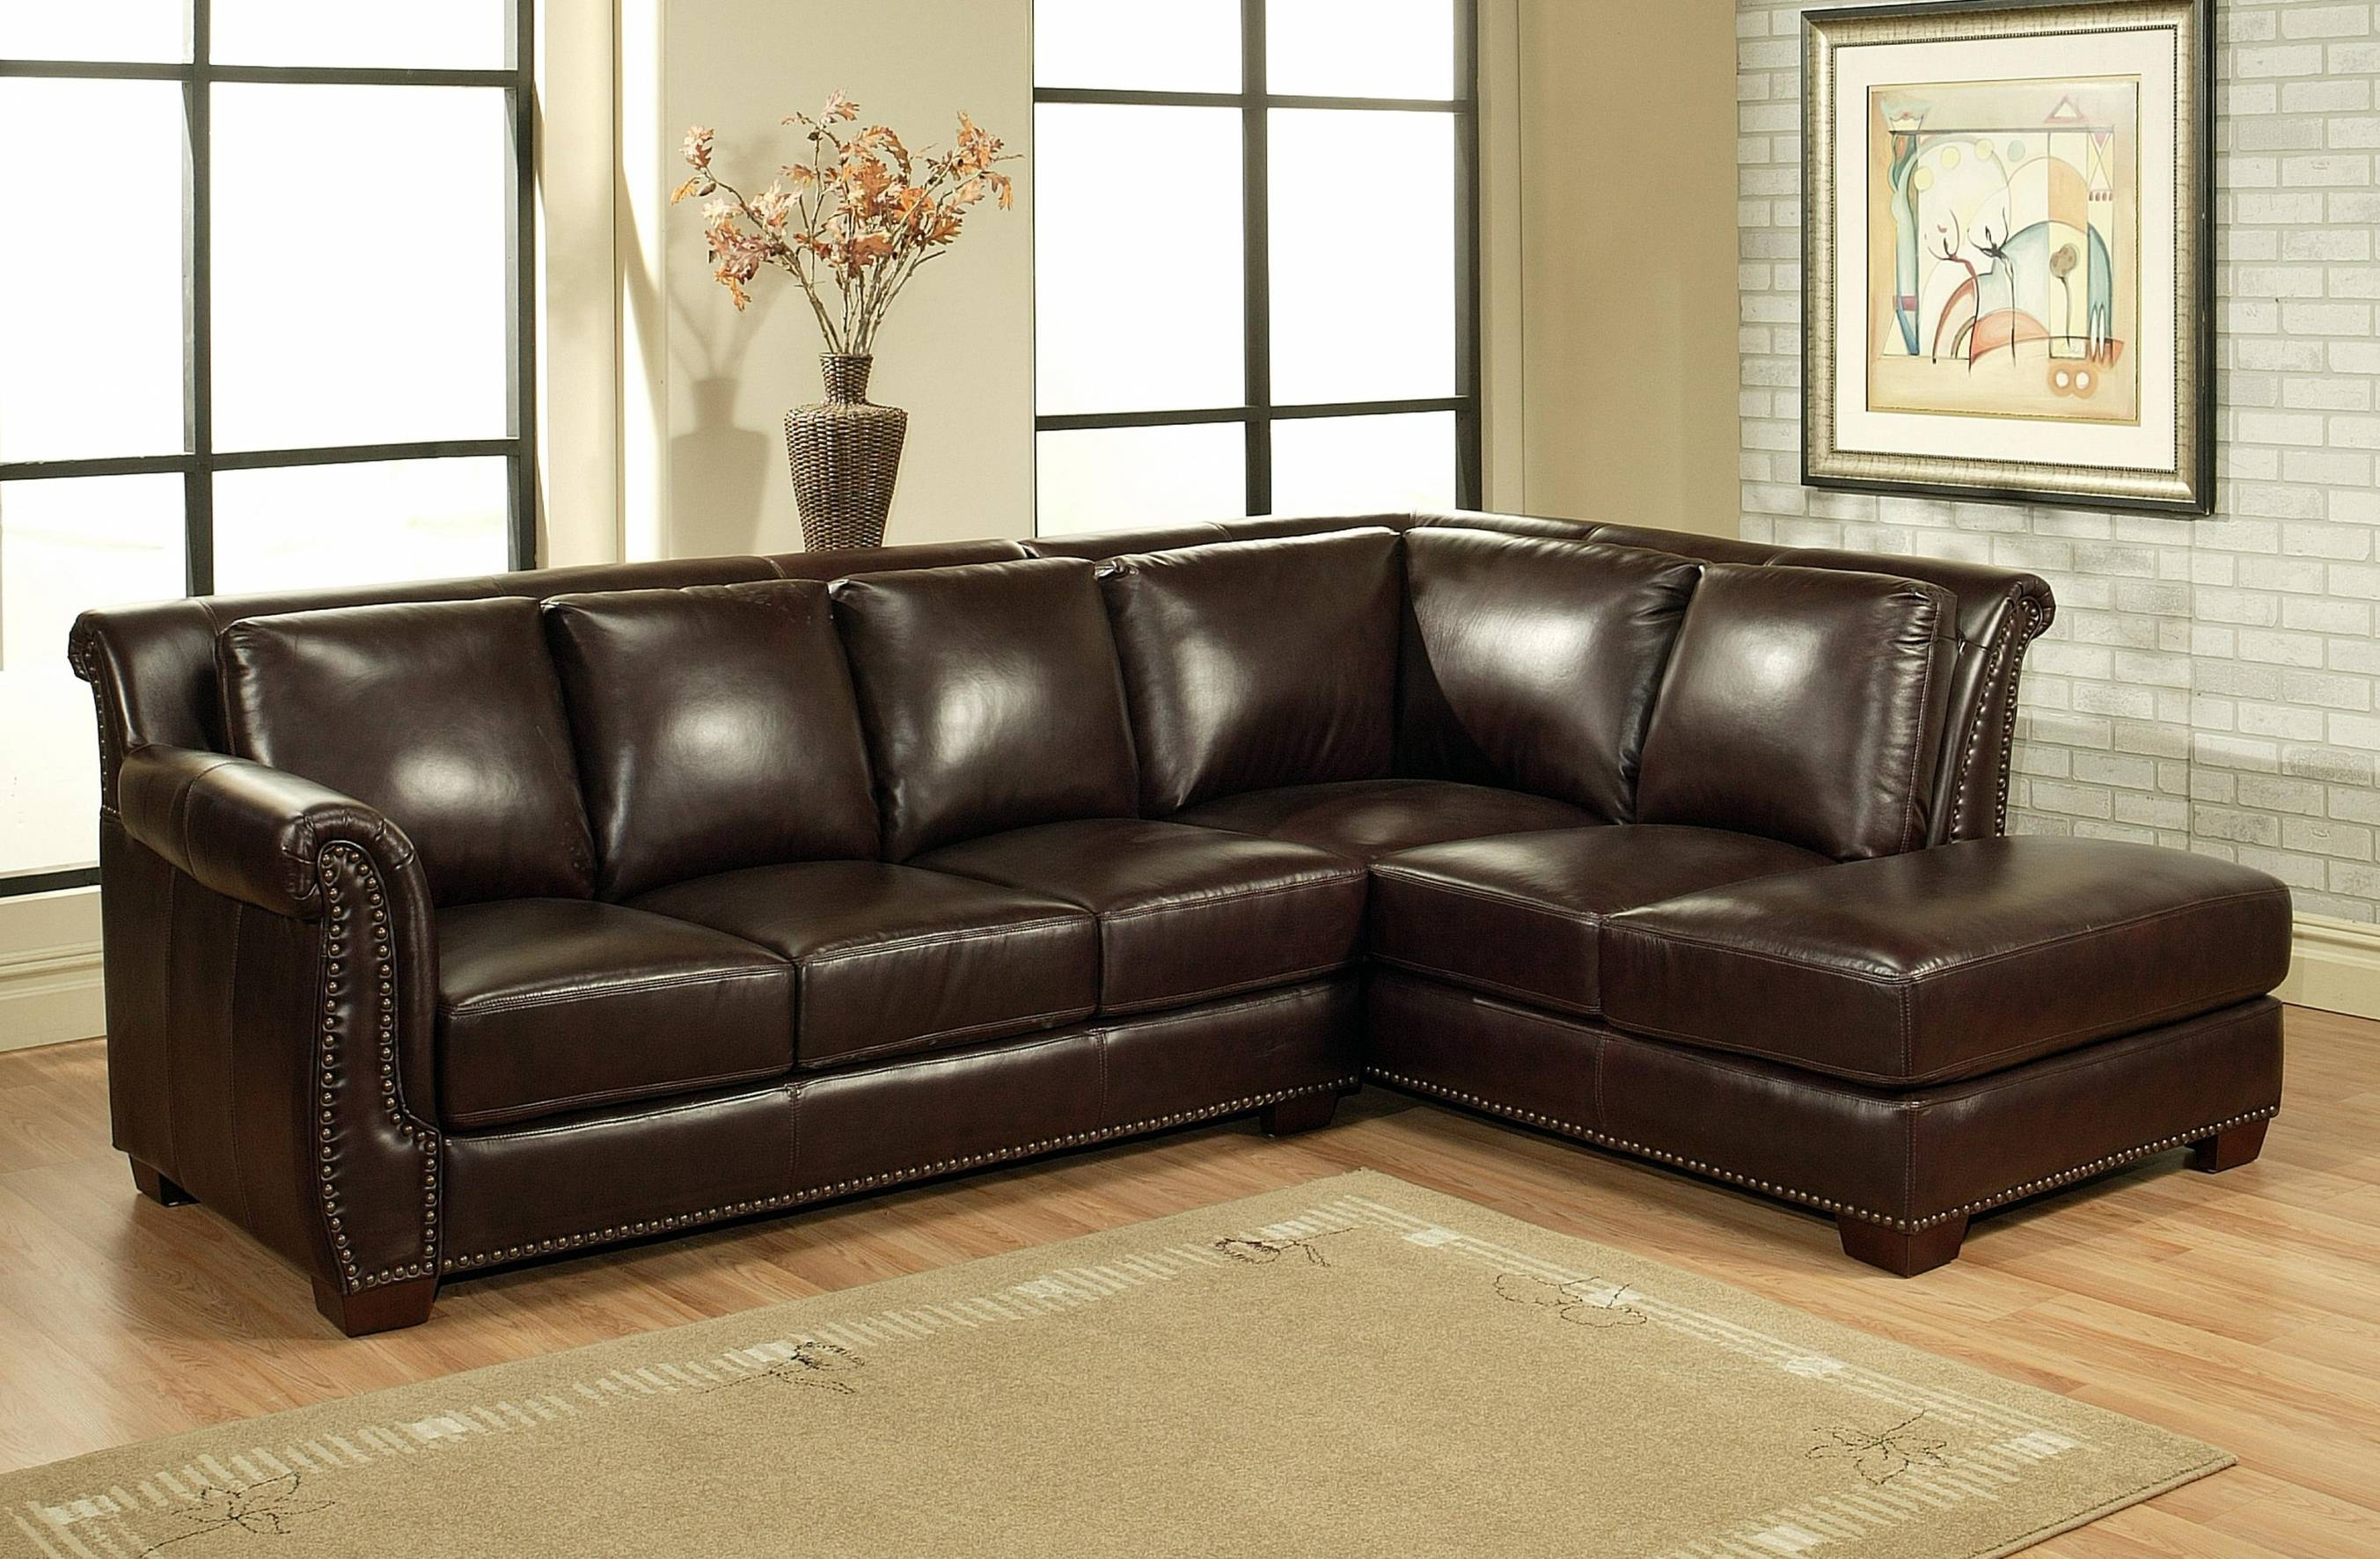 Brown Sectional Couch ~ Uballs with regard to Abbyson Living Charlotte Dark Brown Sectional Sofa And Ottoman (Image 7 of 30)